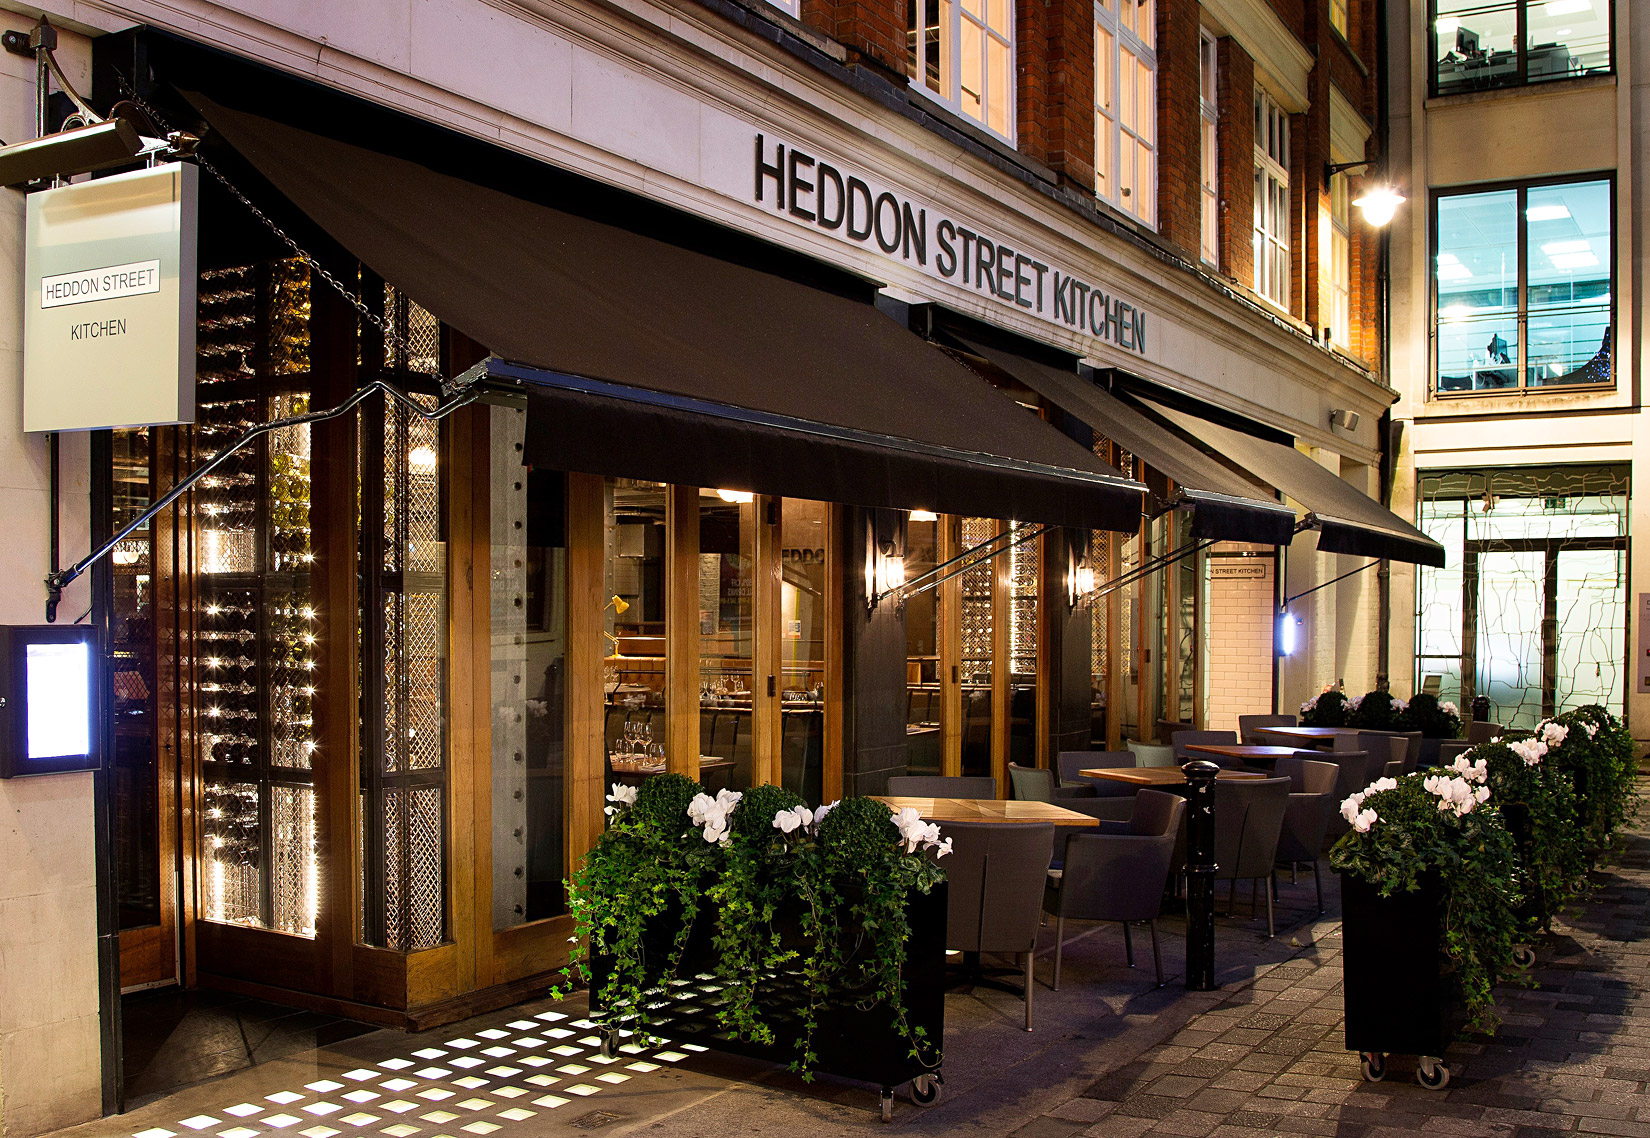 Heddon Street Kitchen - Delightful, Cool And A Restaurant For Every Occasion